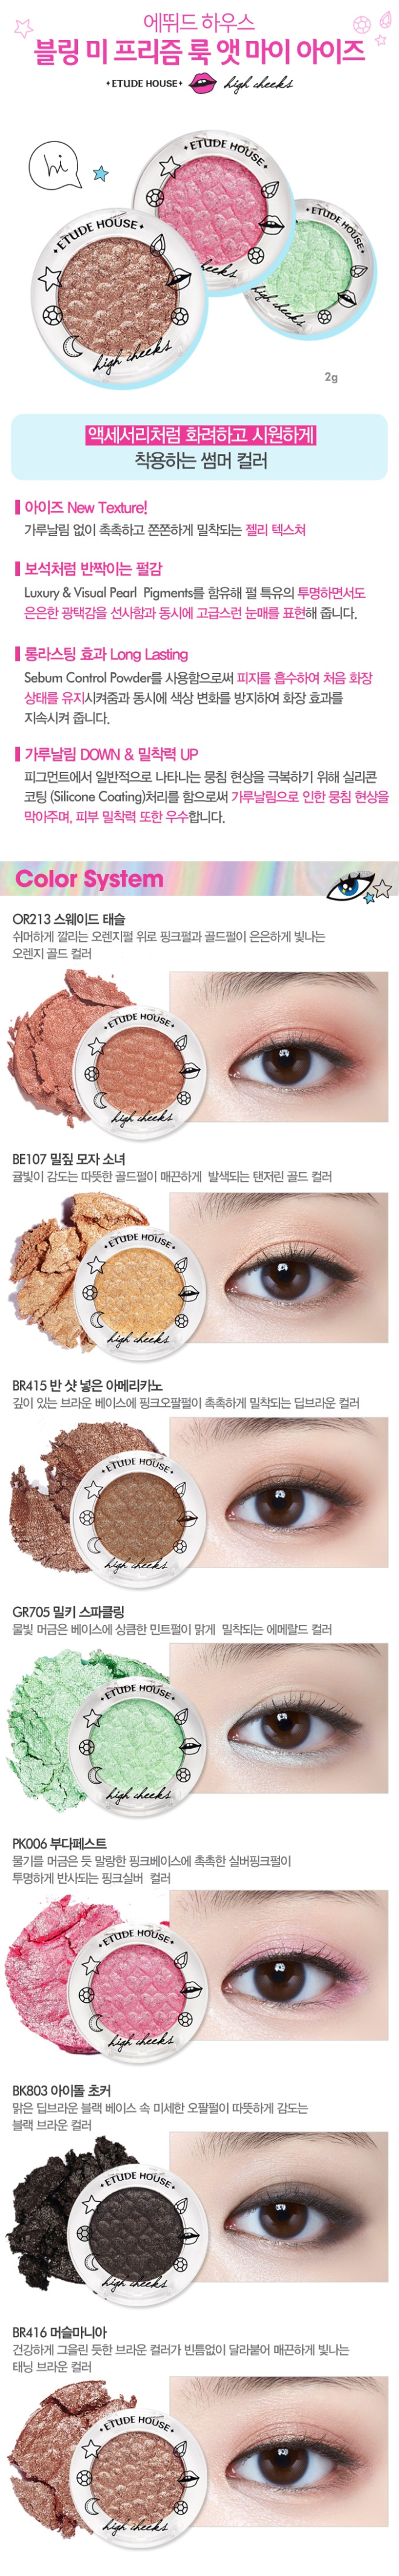 (Etude House x High Cheeks - Bling Me Prism Look At My Eyes) Credit: Etude House Korea website